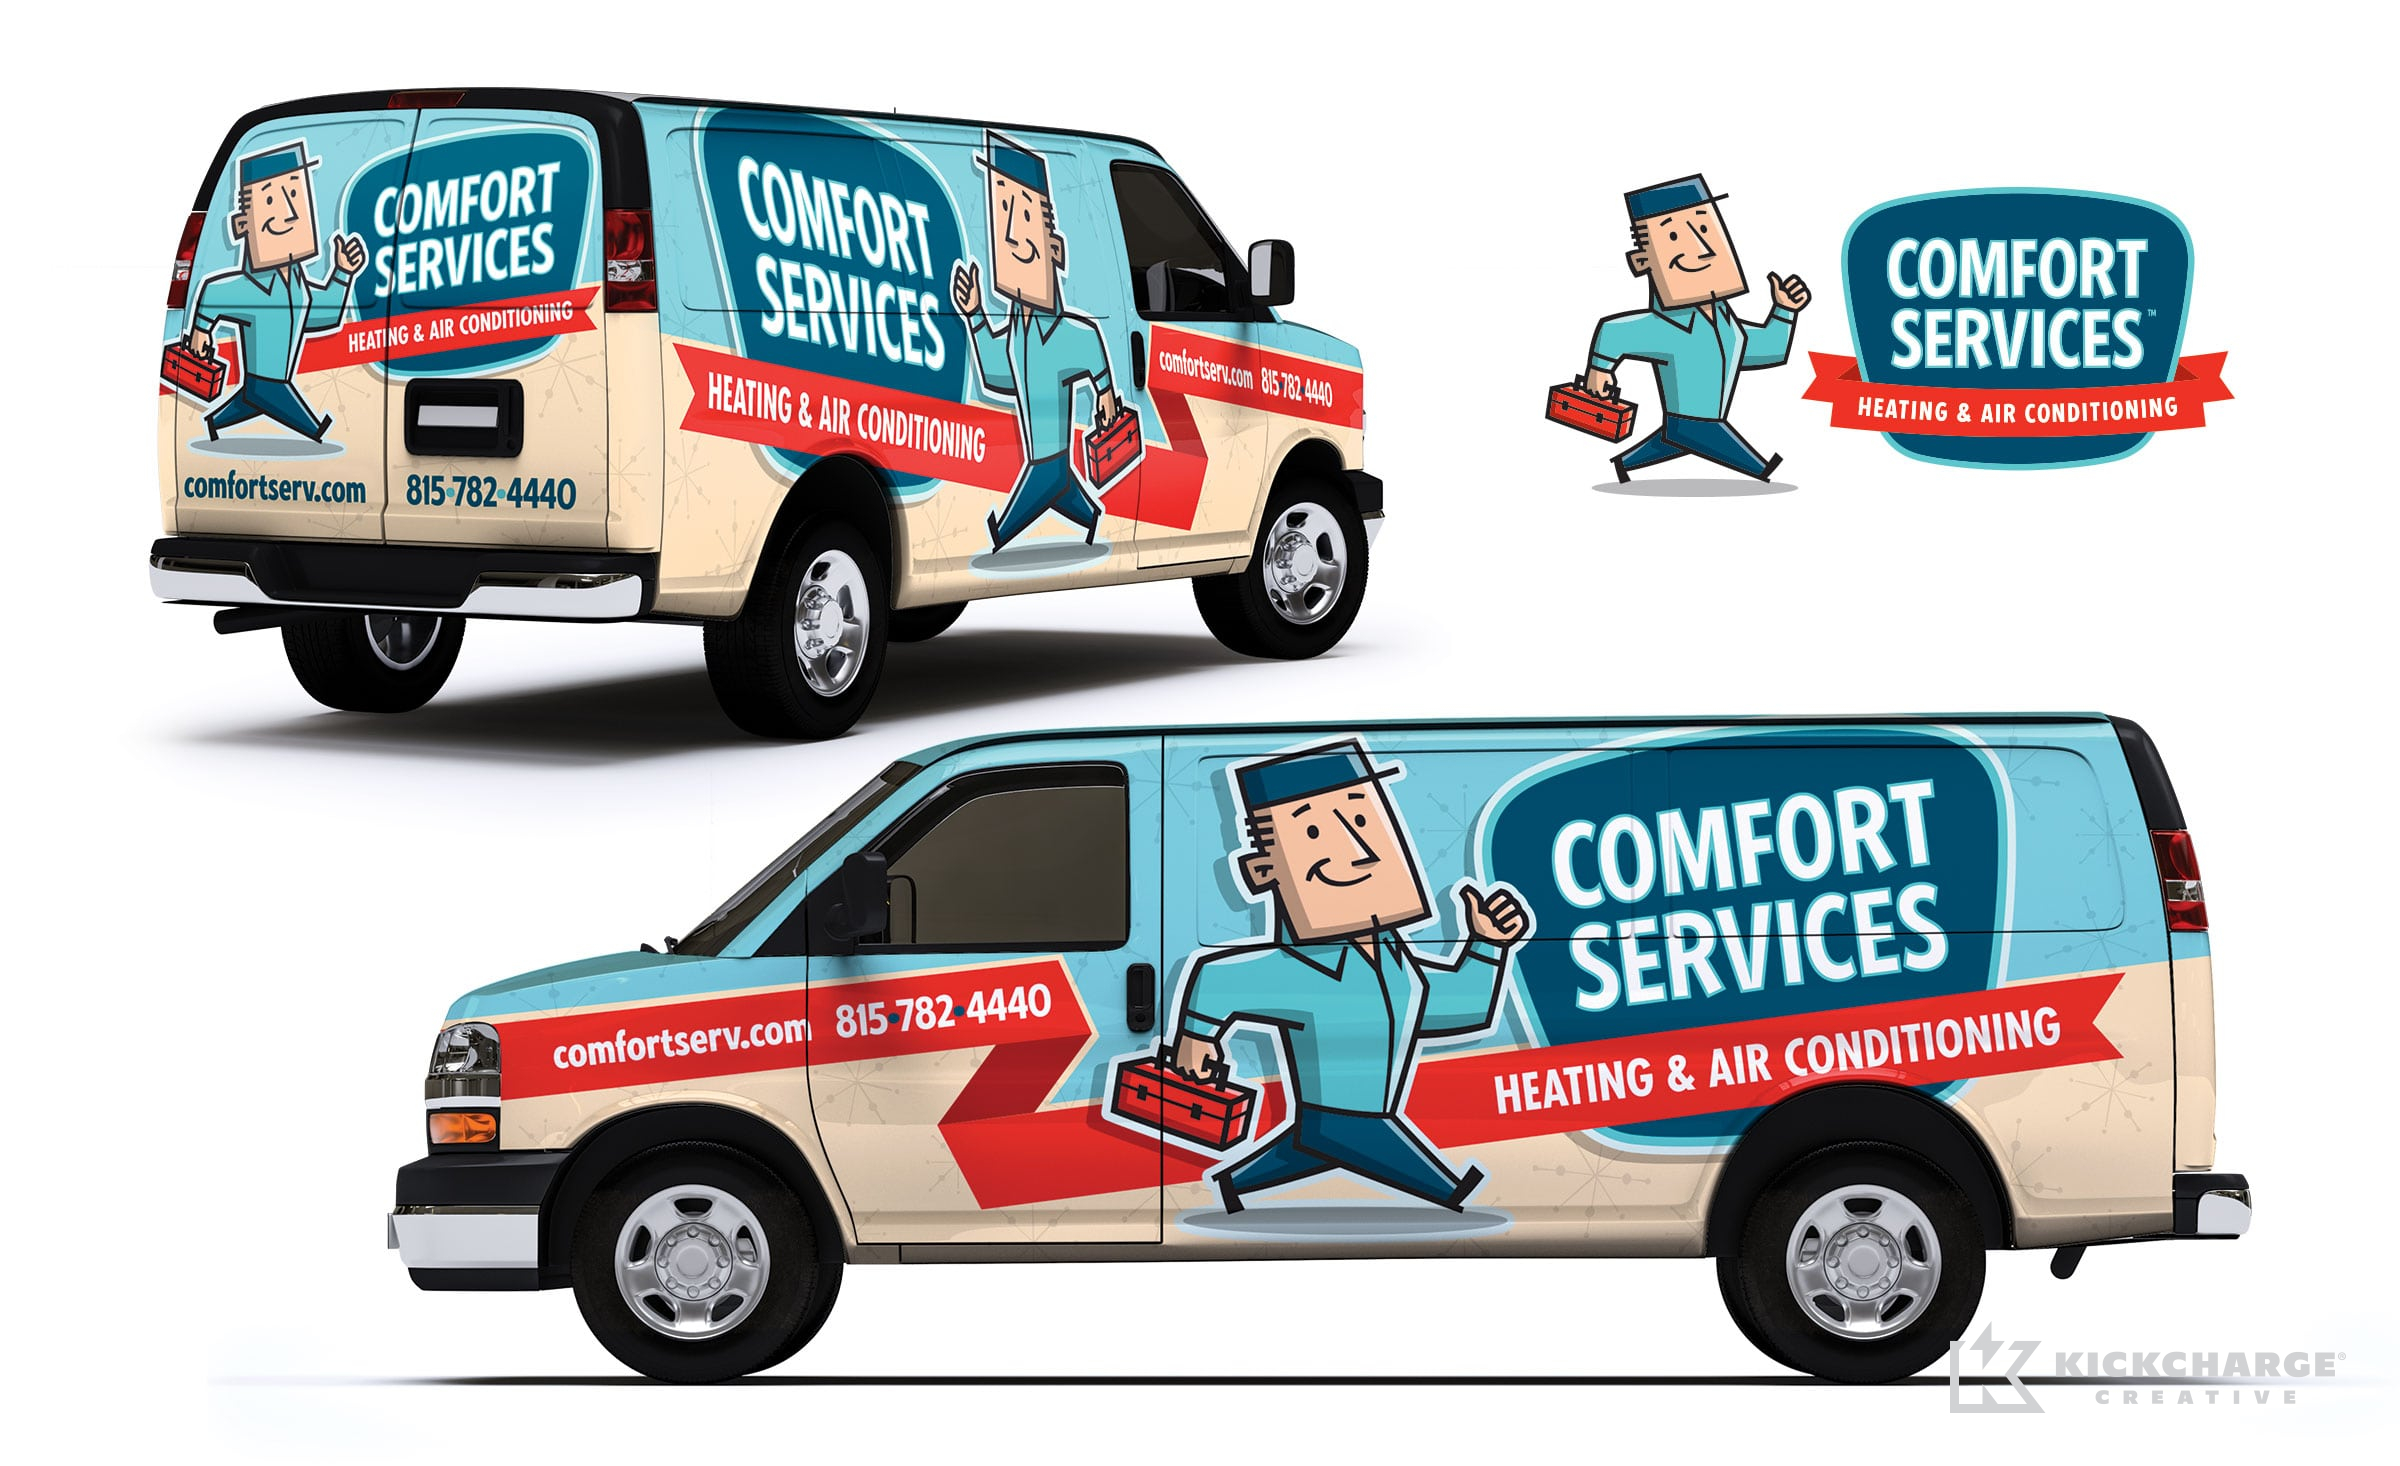 Comfort Services Heating & Air Conditioning